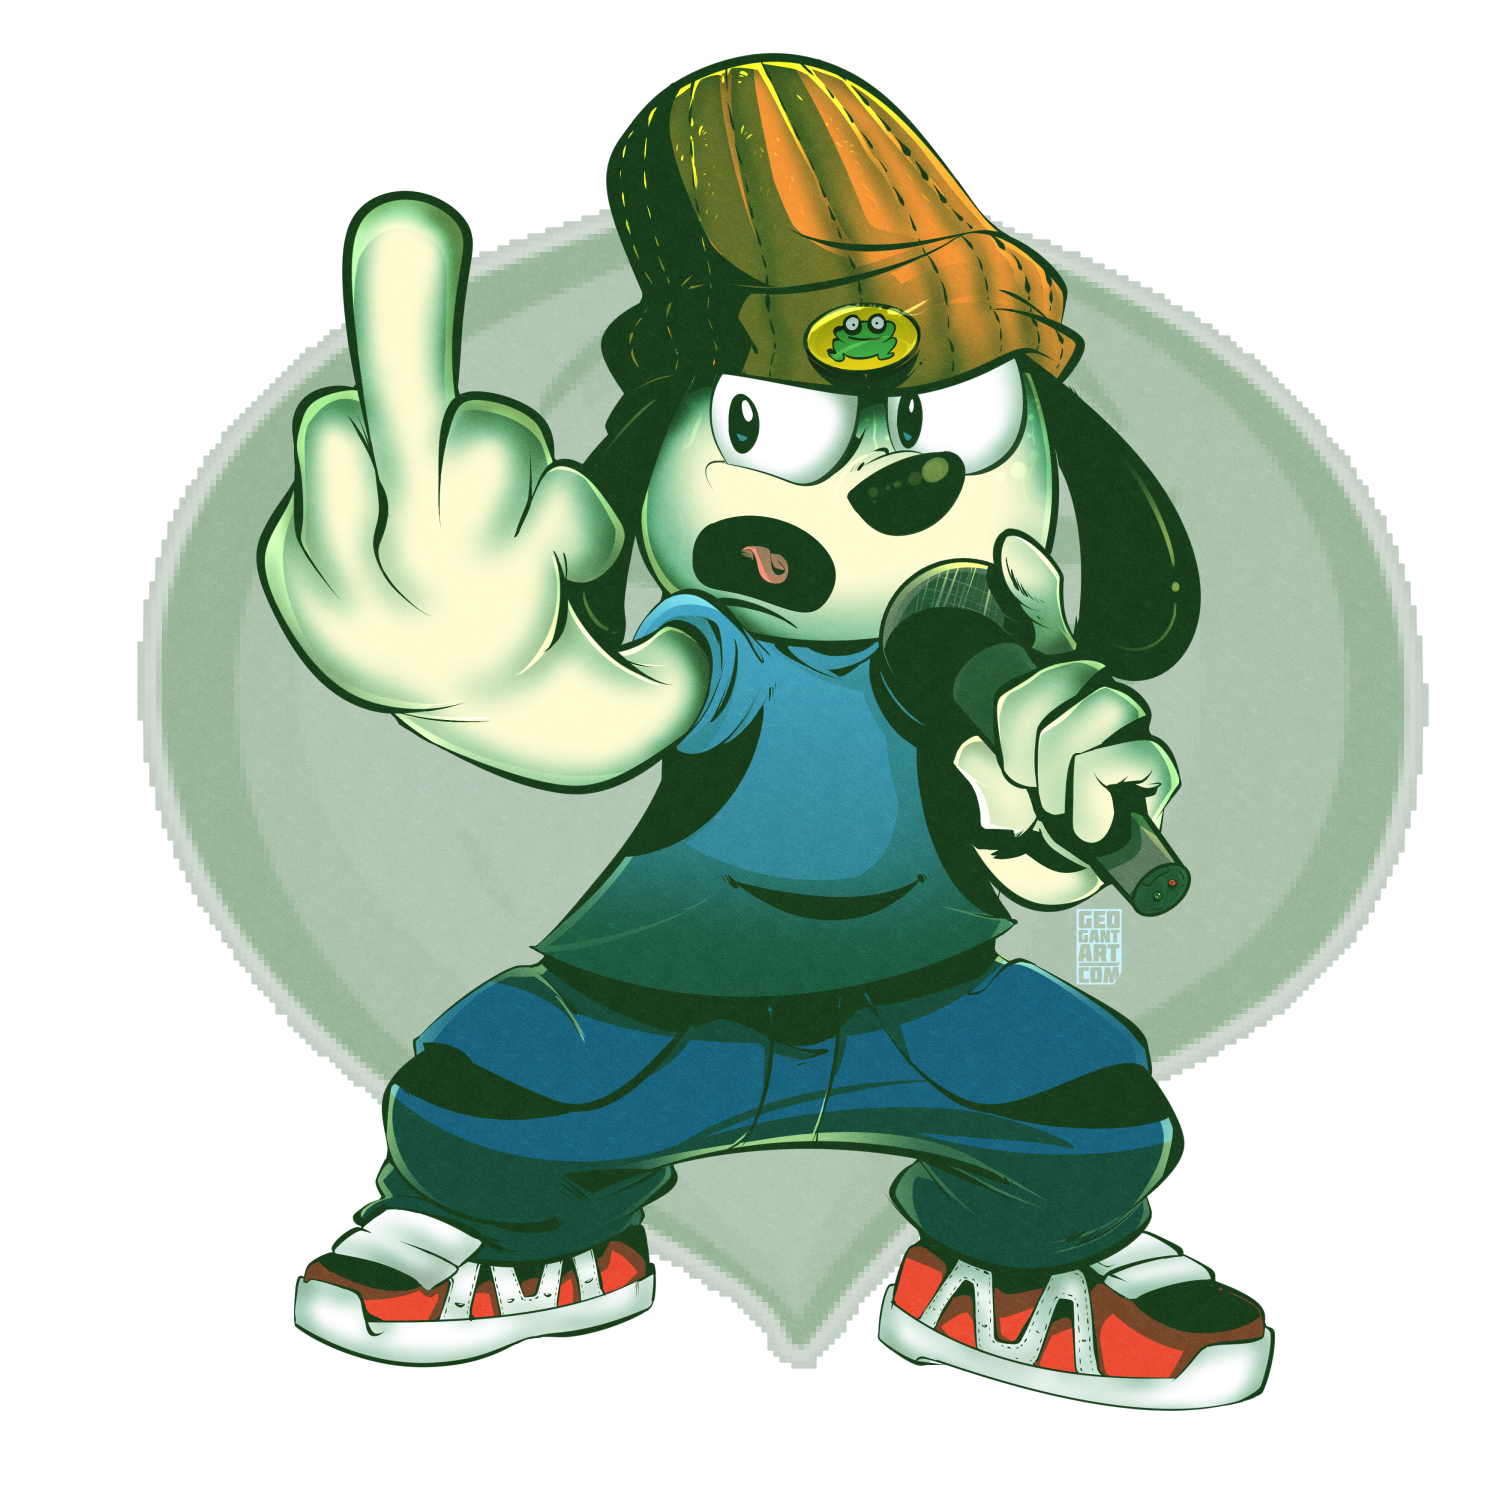 parappa the rapper by geogant on newgrounds